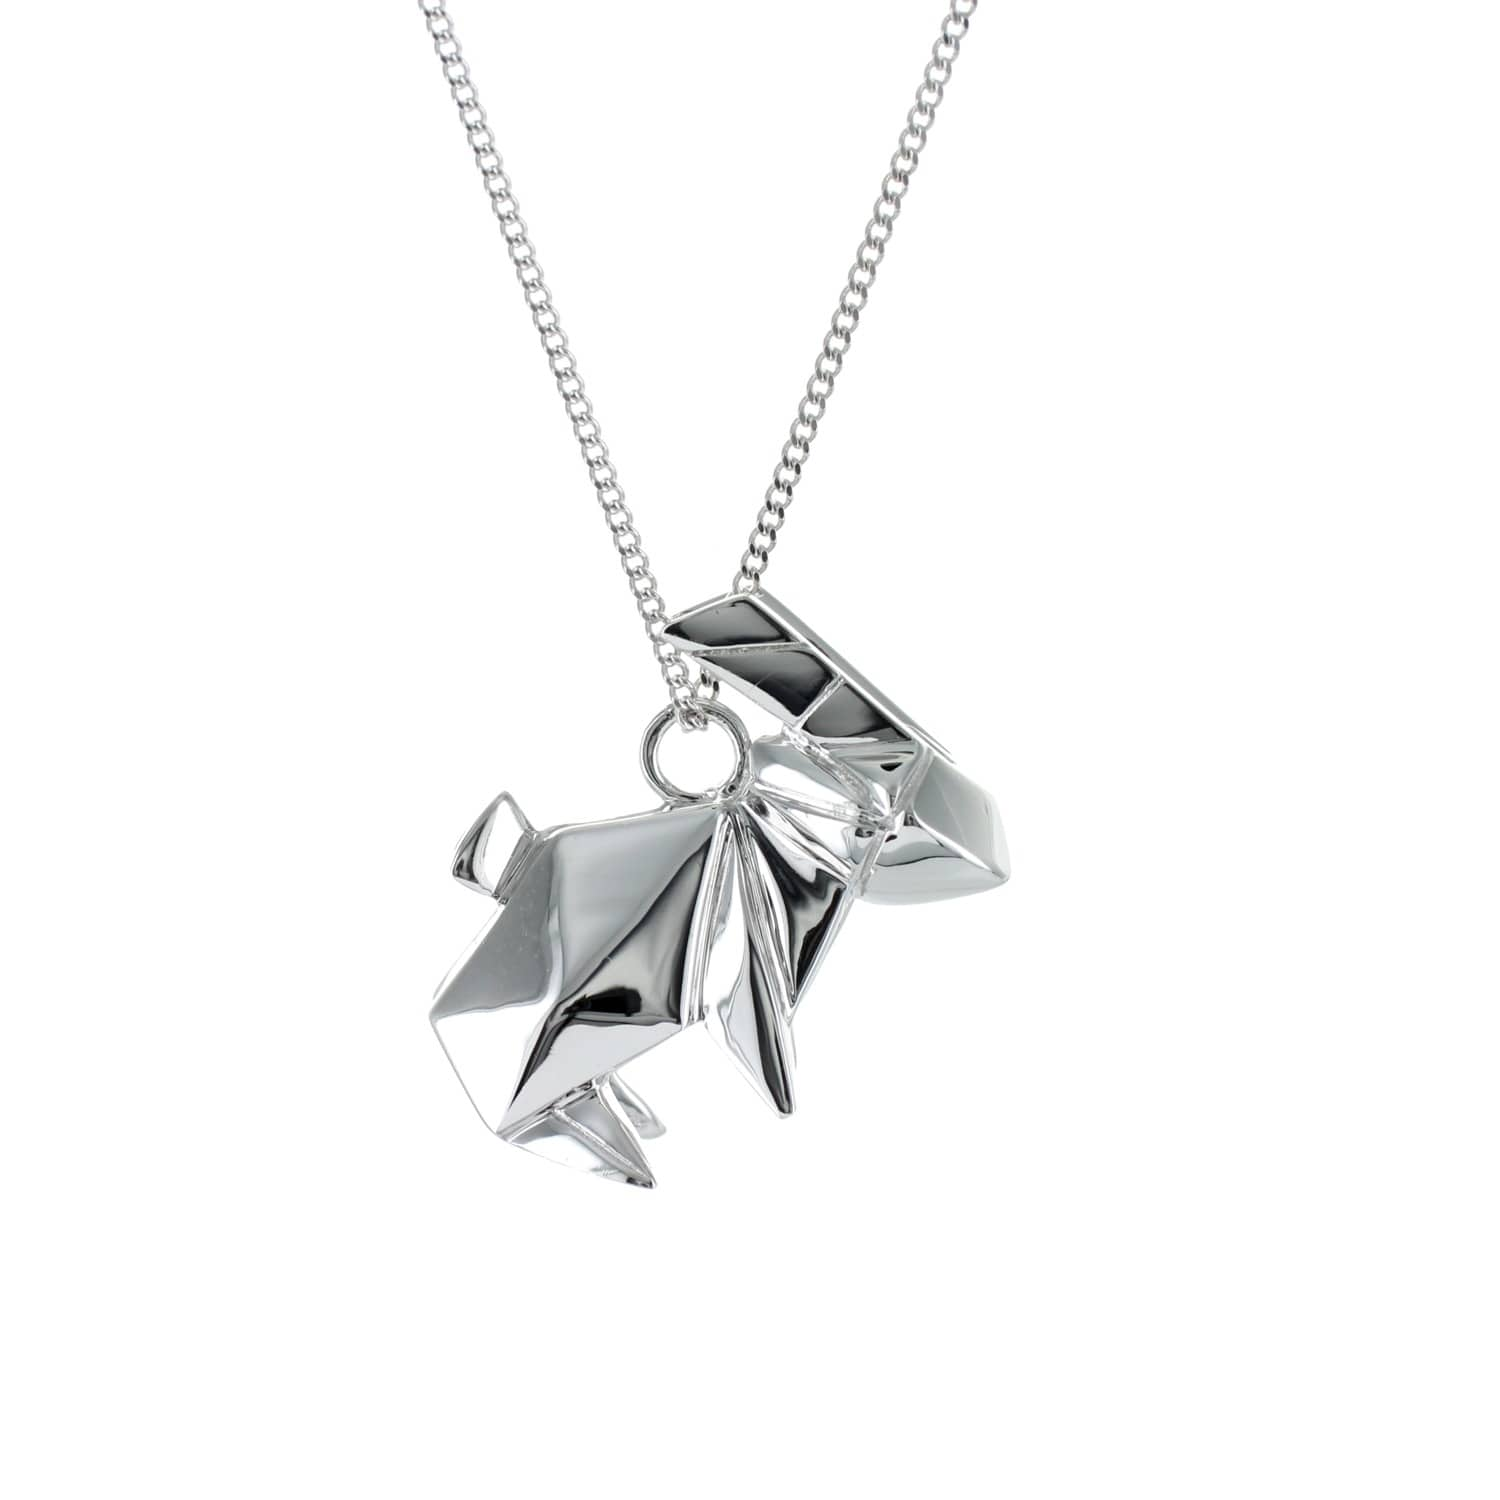 Origami Jewellery Sterling Silver Gold Plated Rabbit Necklace NQDFn9rjK